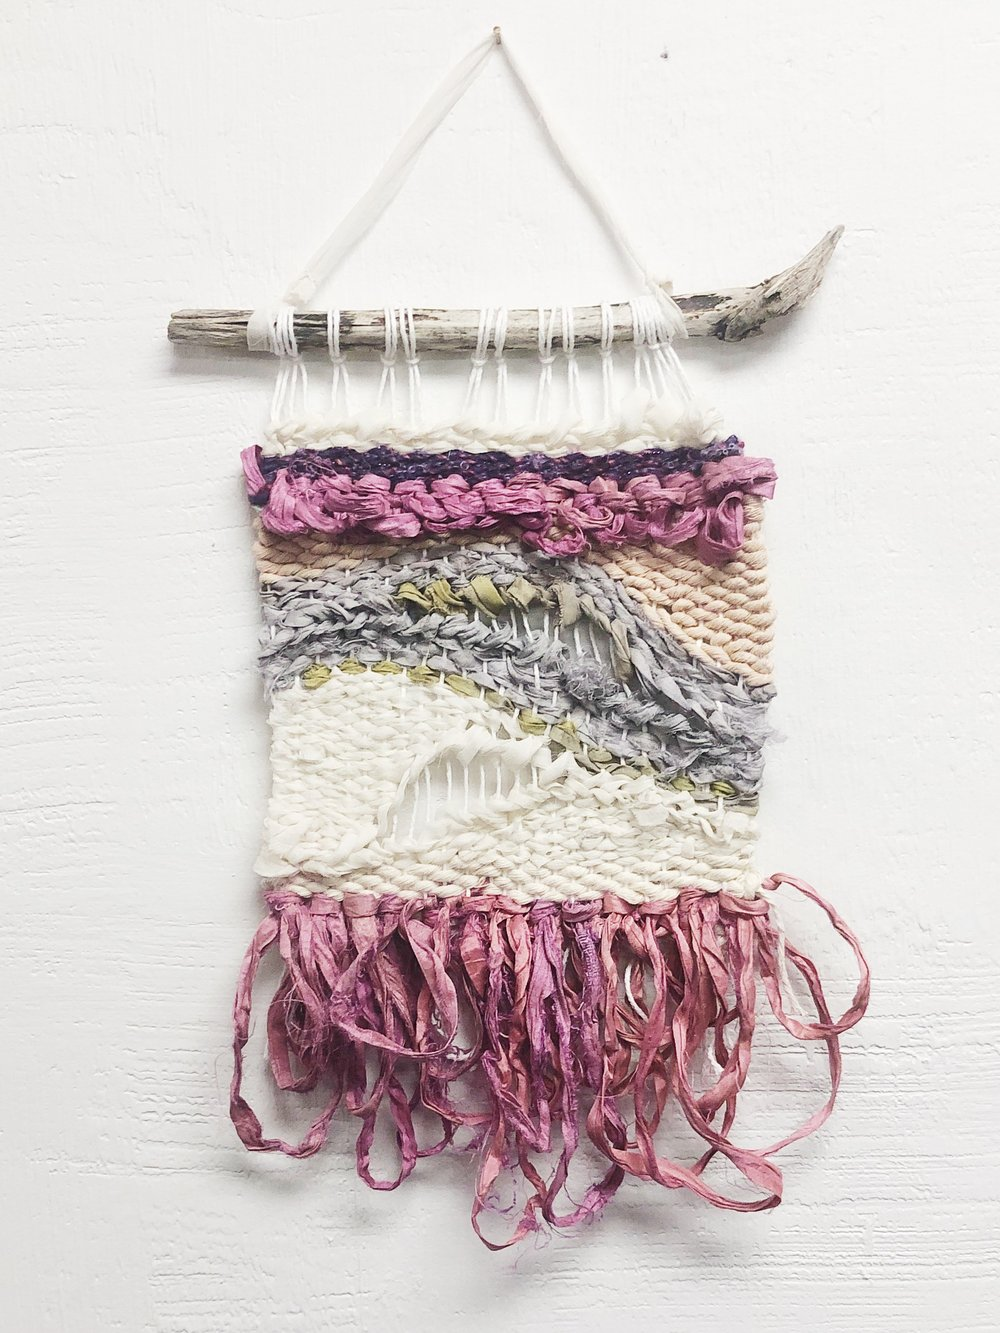 Blush Tone Negative Space Woven Wall Hanging $35  Look at this one-of-a-kind beauty, ready to fulfill the most bohemian space. This piece is a beautiful combination of naturally dyed cotton rope, upcycled saris, and a gorgeous purple yarn.